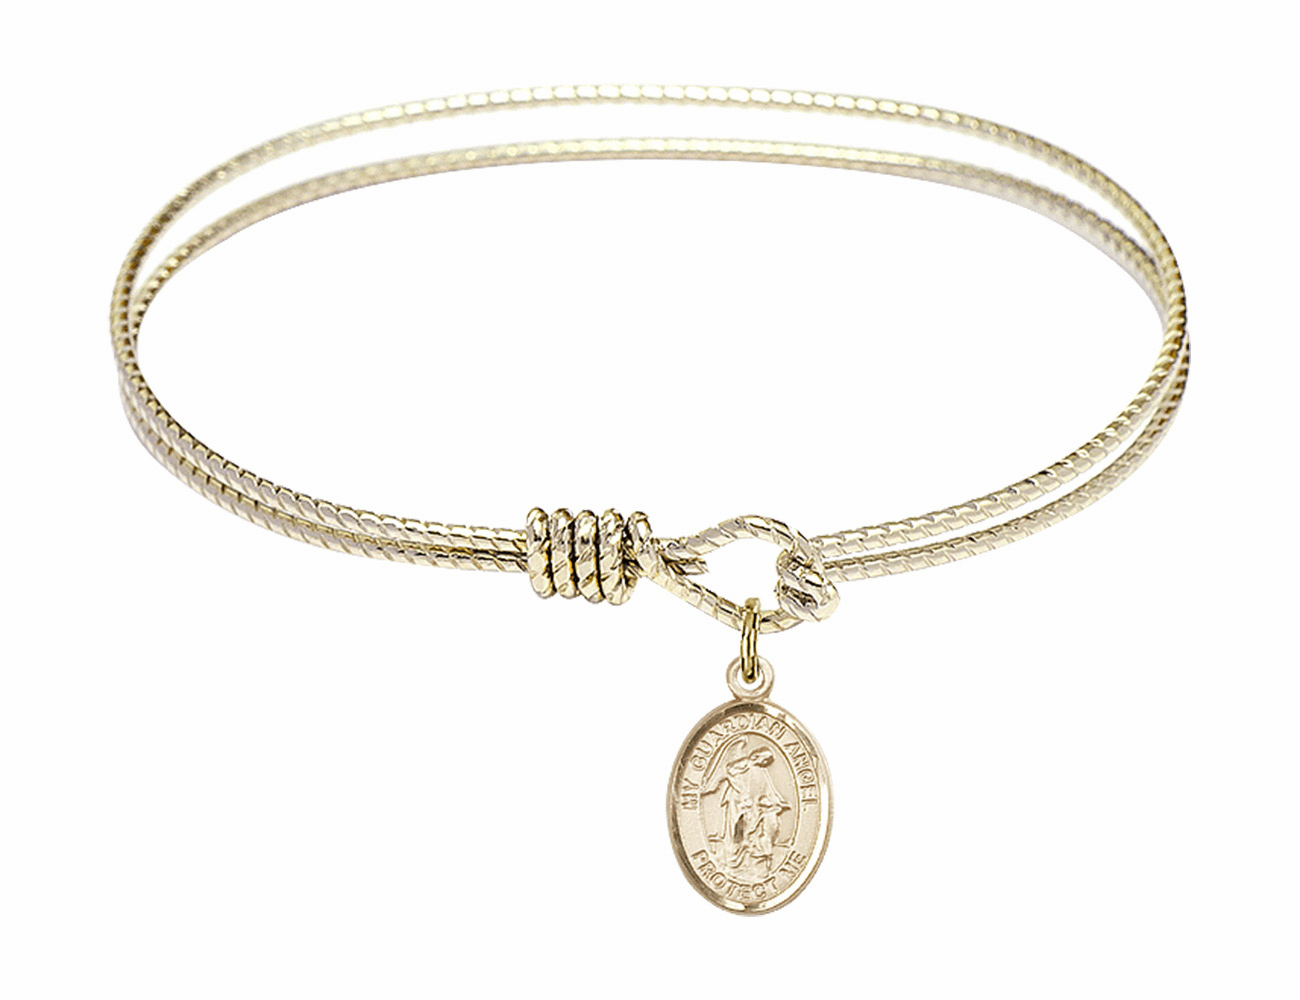 Twisted Guardian Angel Bangle 14kt Gold-filled Charm Bracelet by Bliss